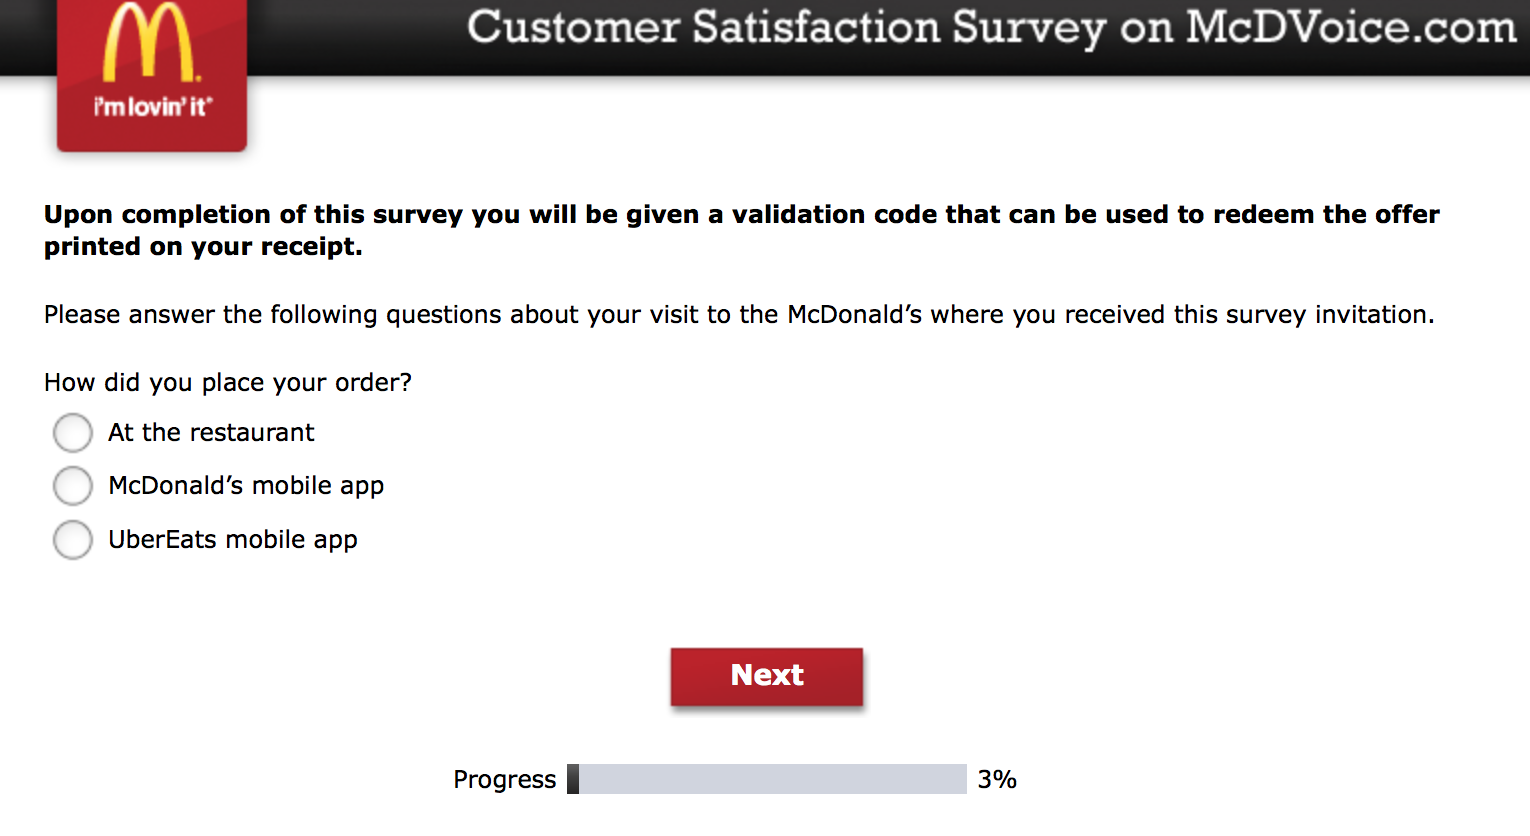 Mcdvoice.com Customer Survey 1